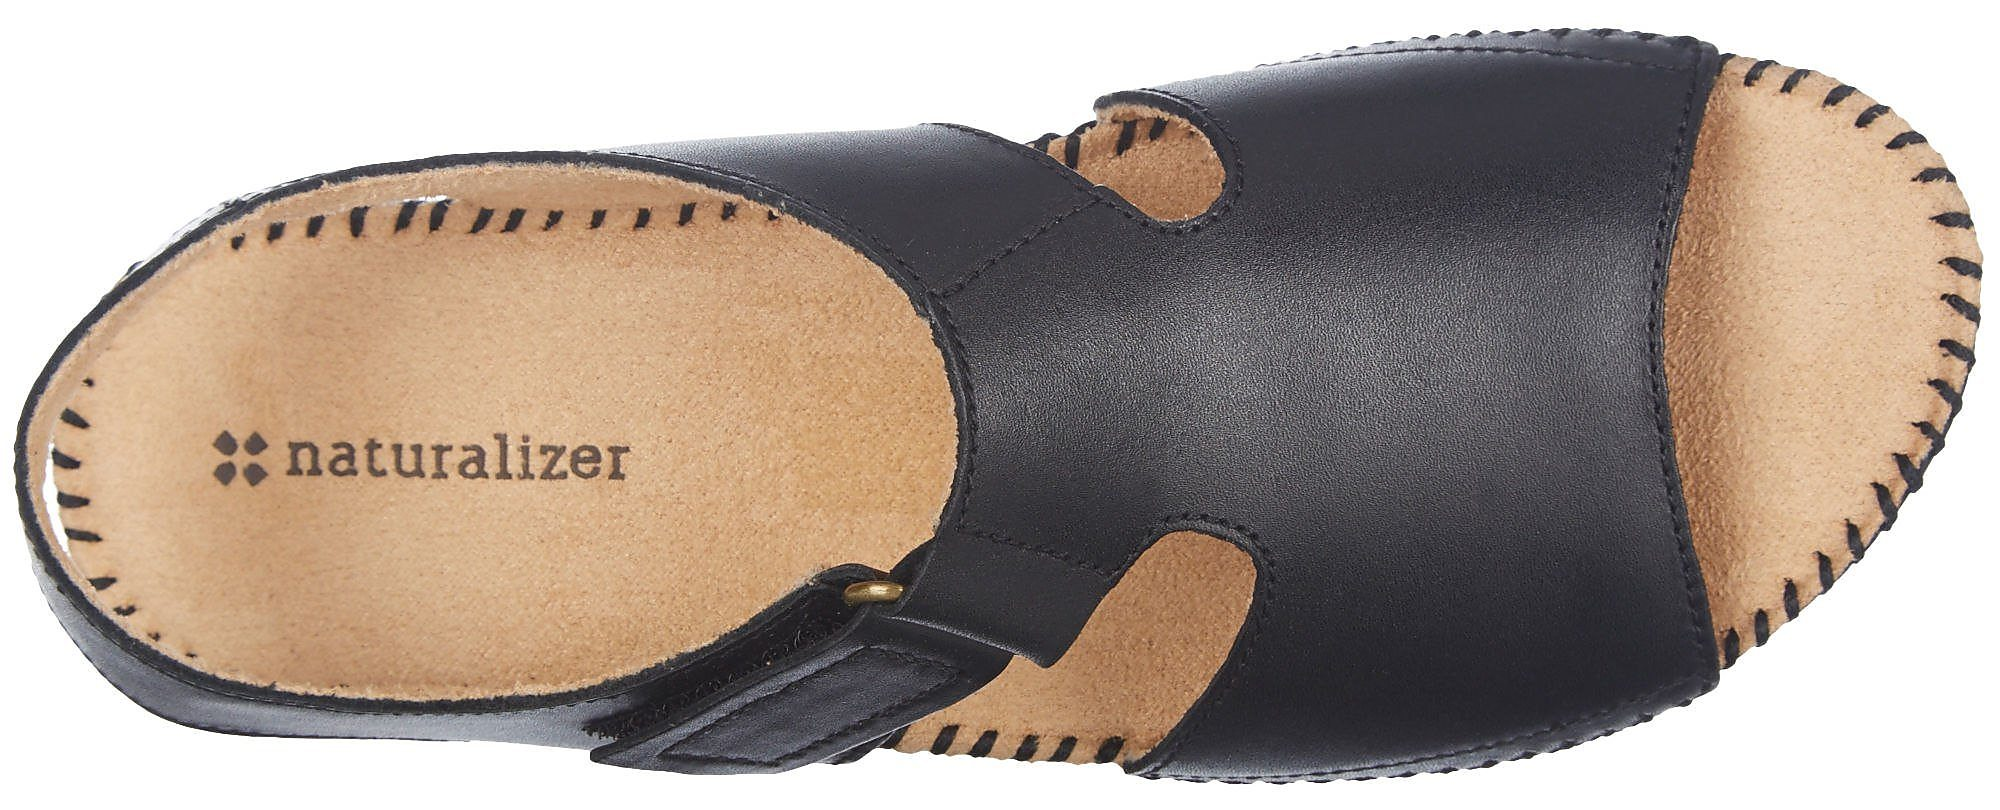 Naturalizer-Womens-Scout-II-Sandals thumbnail 6